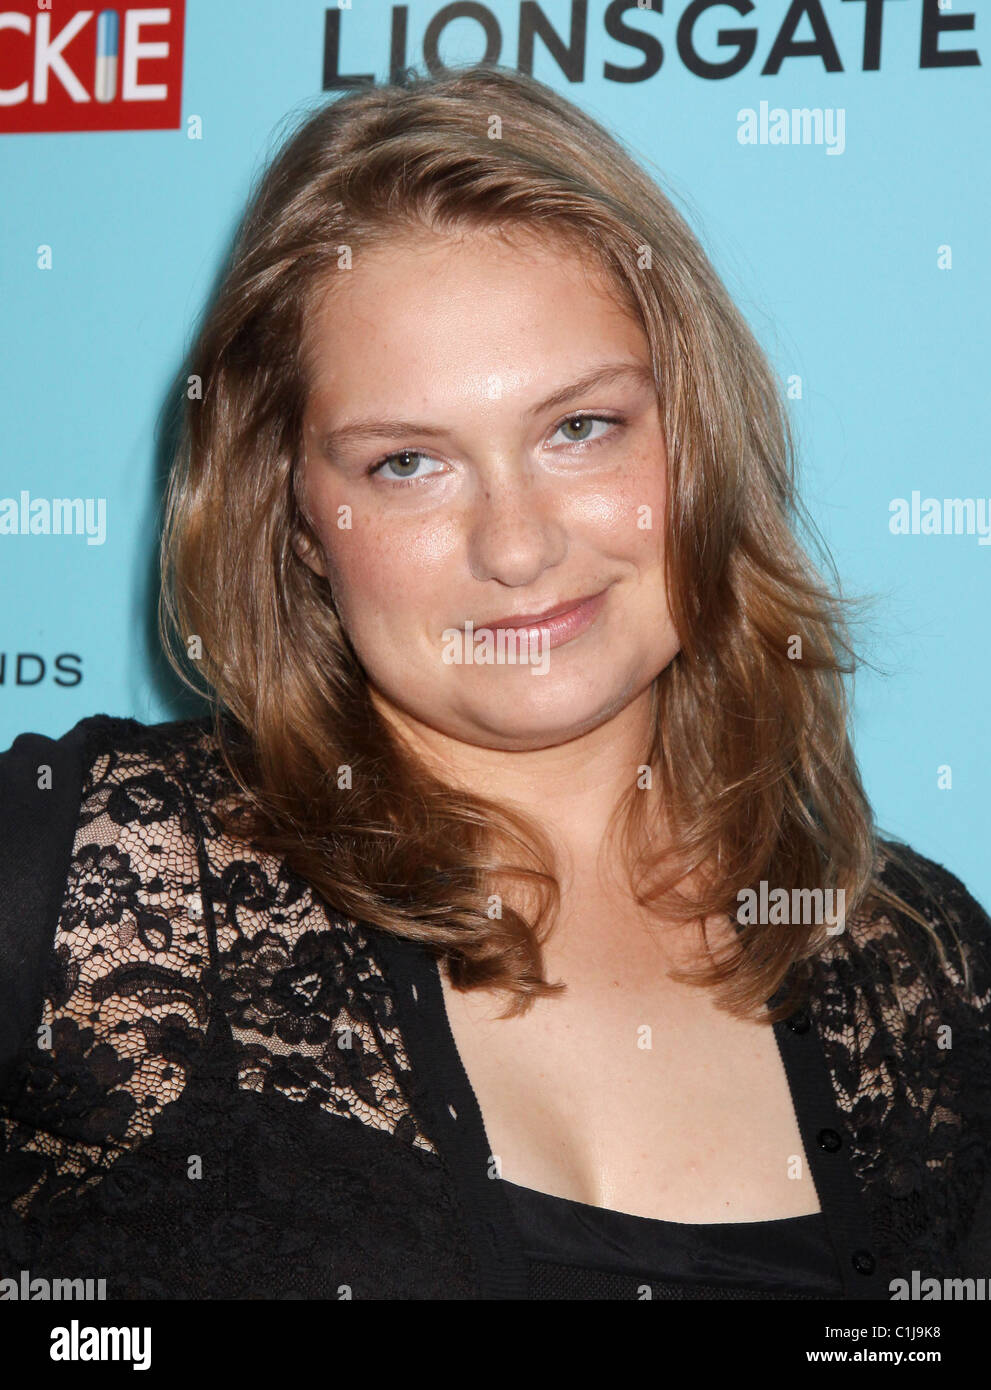 Merritt Wever Nude Photos 18